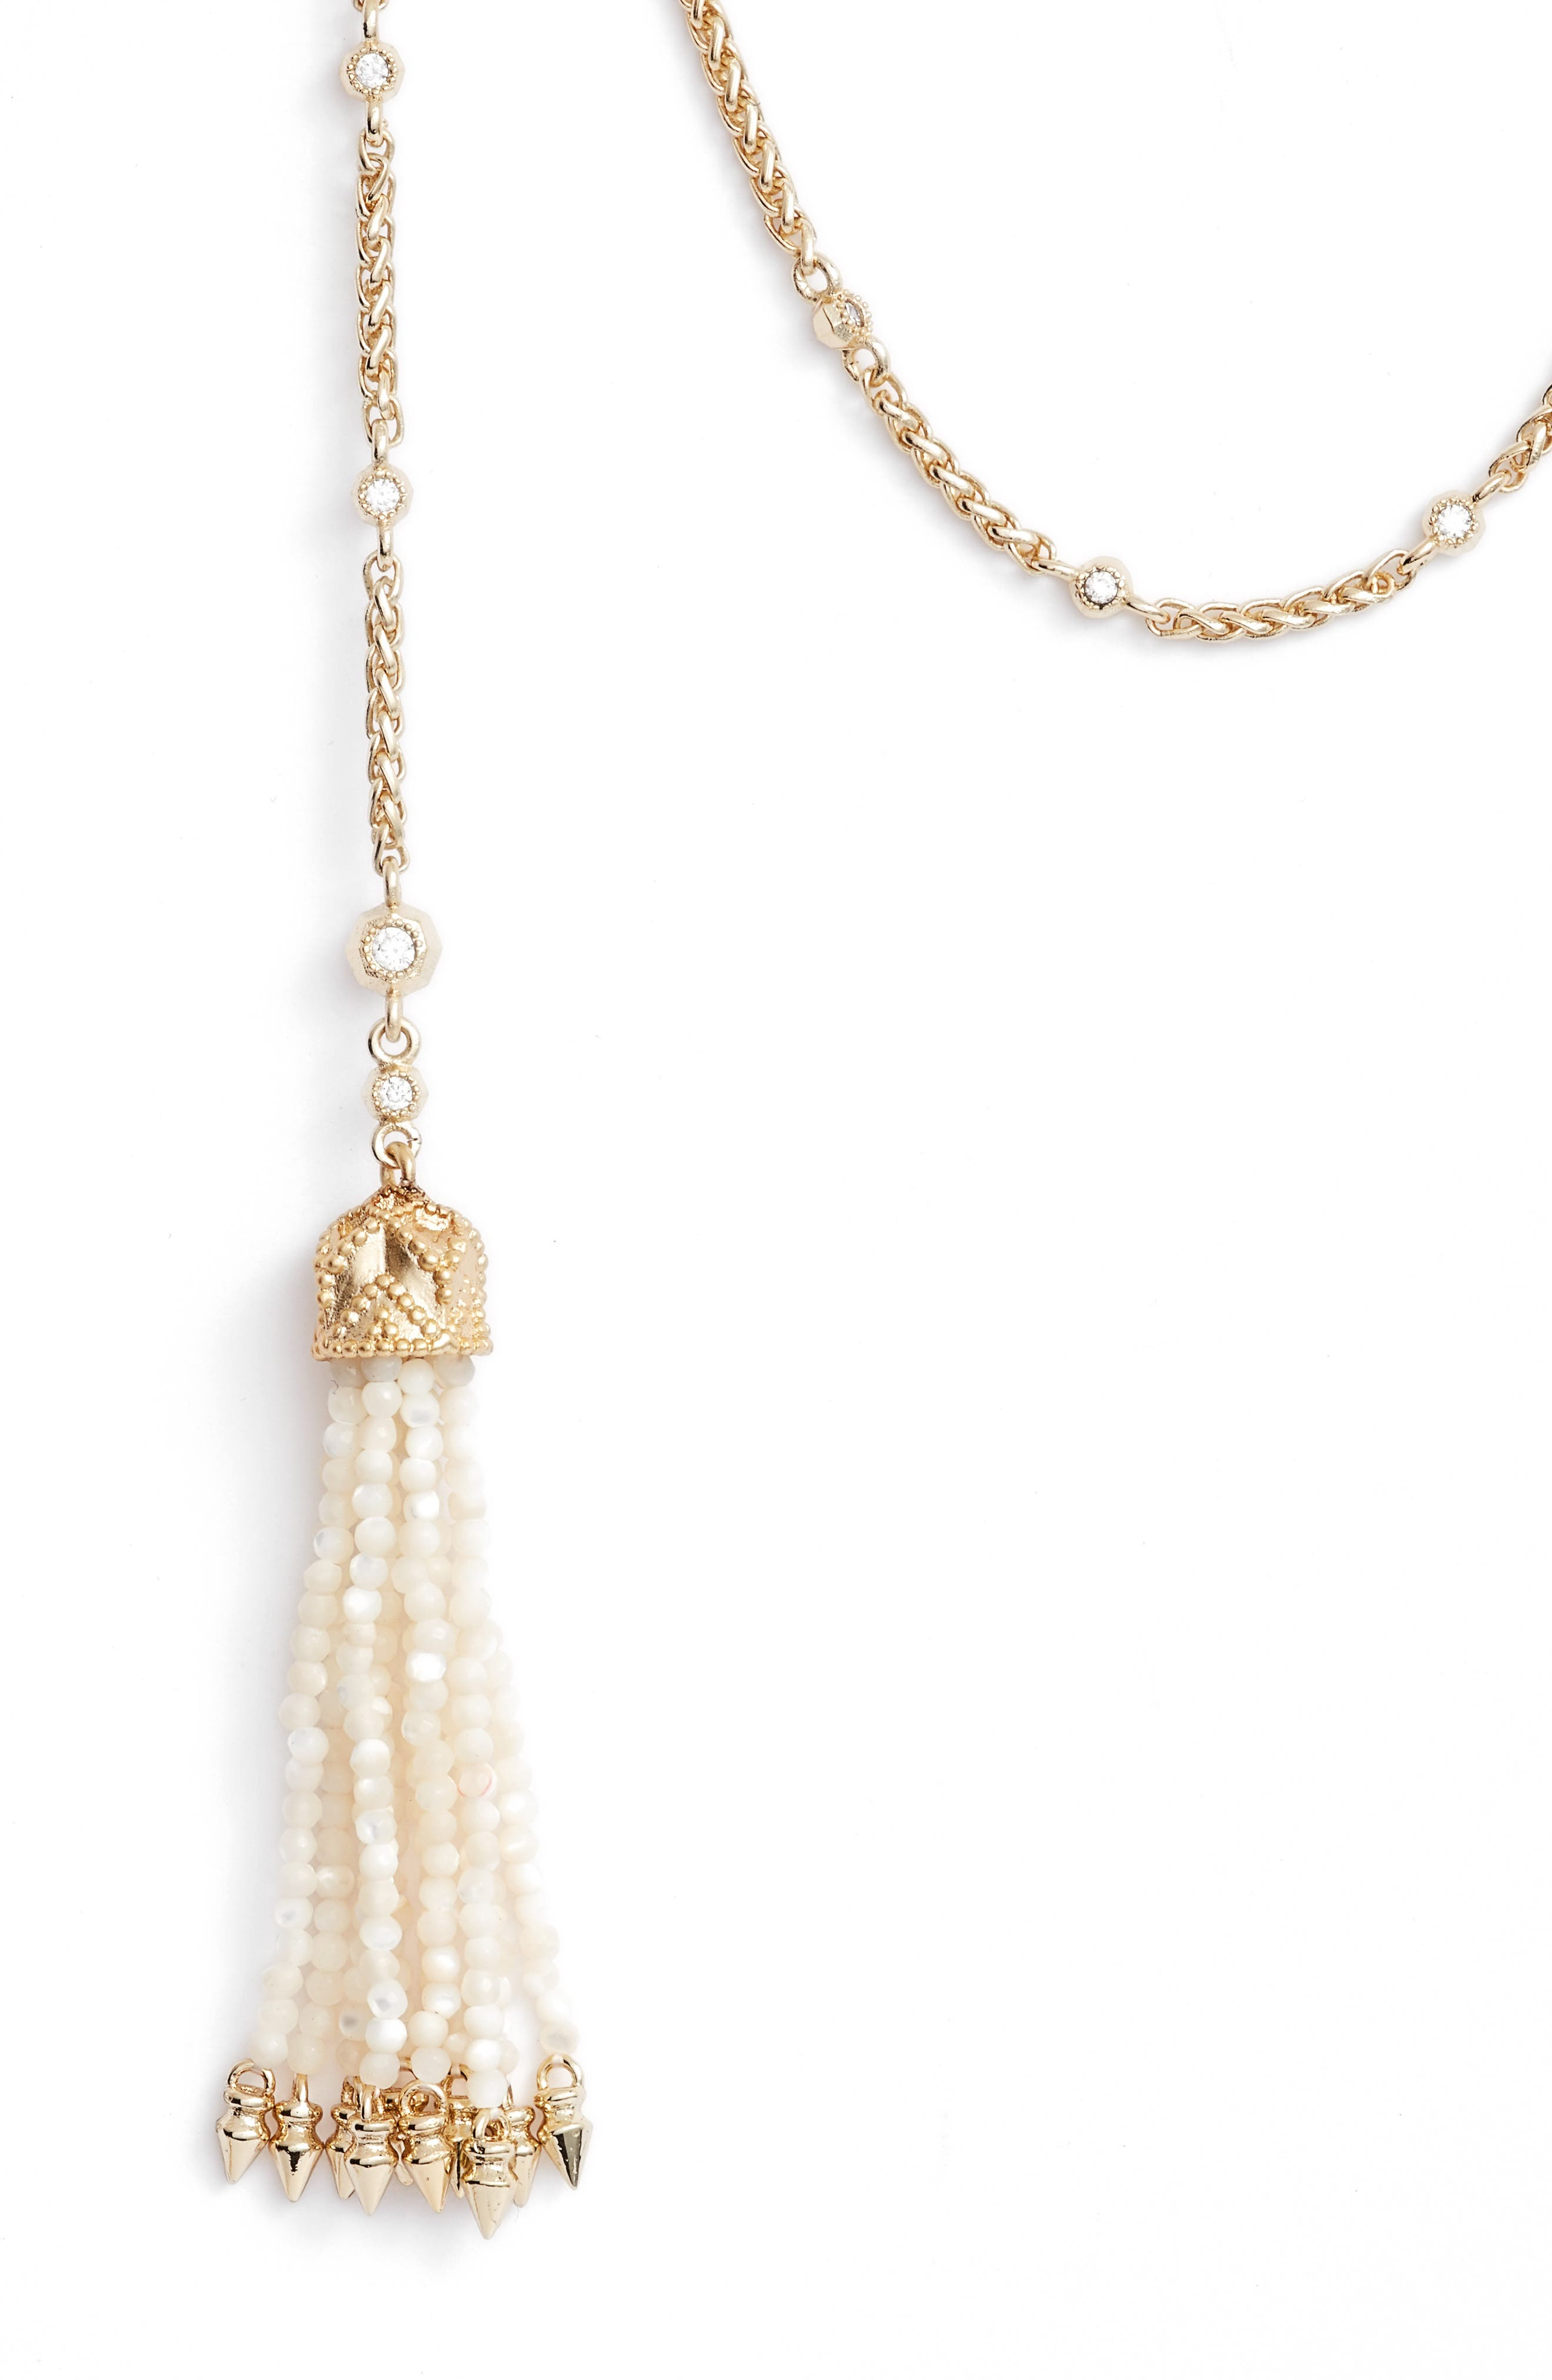 Monique Tassel Necklace,                             Alternate thumbnail 2, color,                             Ivory Mop/ Gold